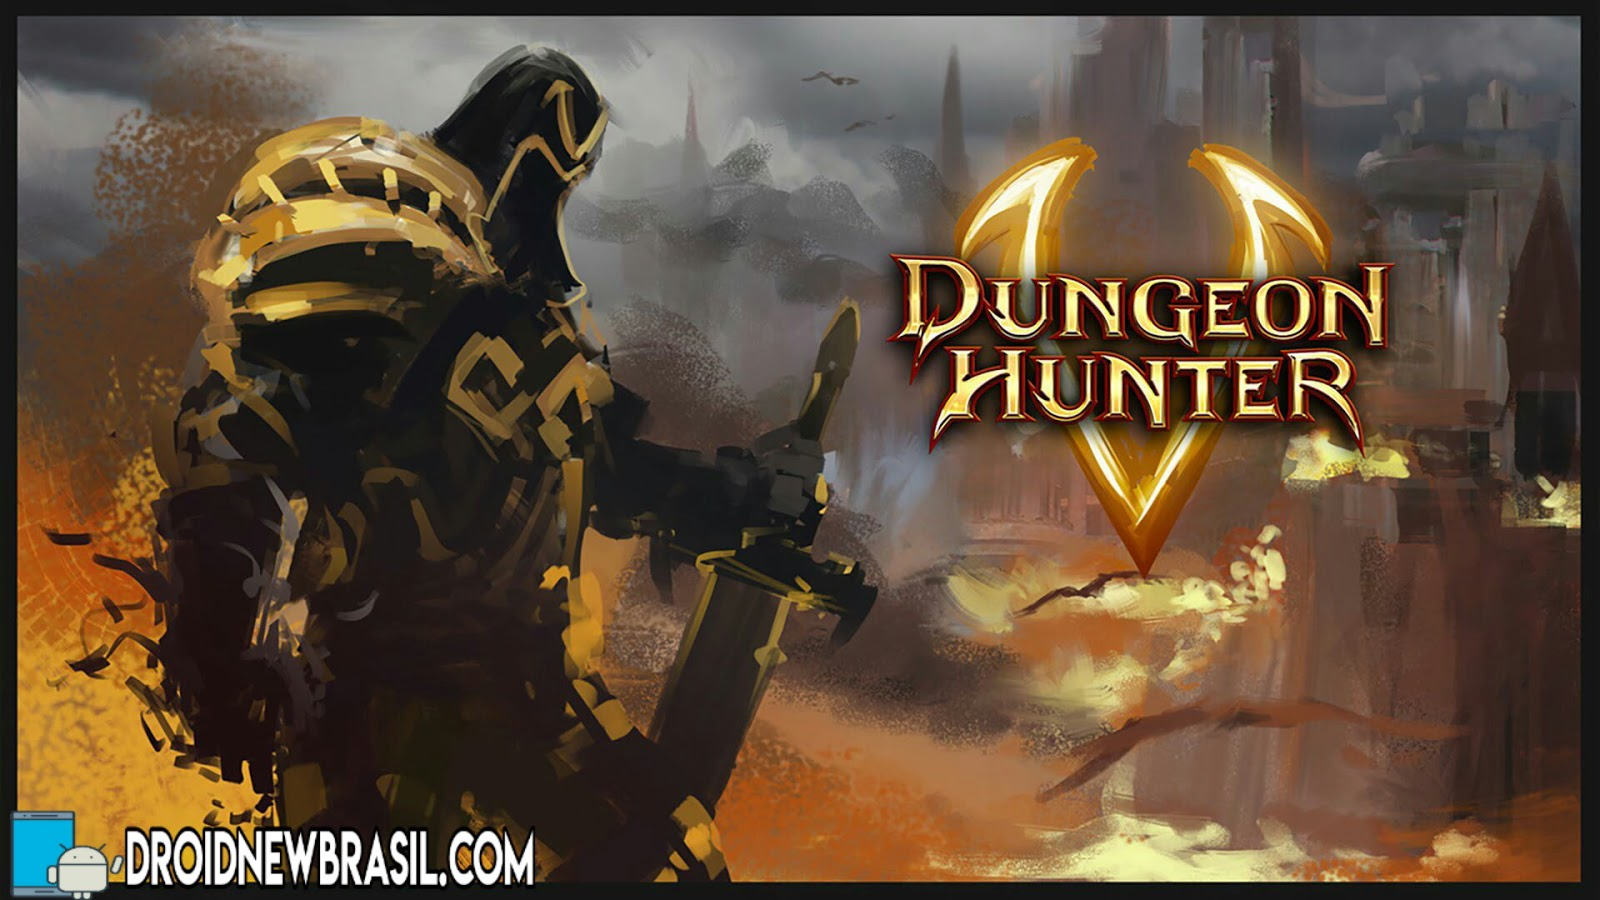 Dungeon Hunter 5 v3.5.0h Apk – OBB